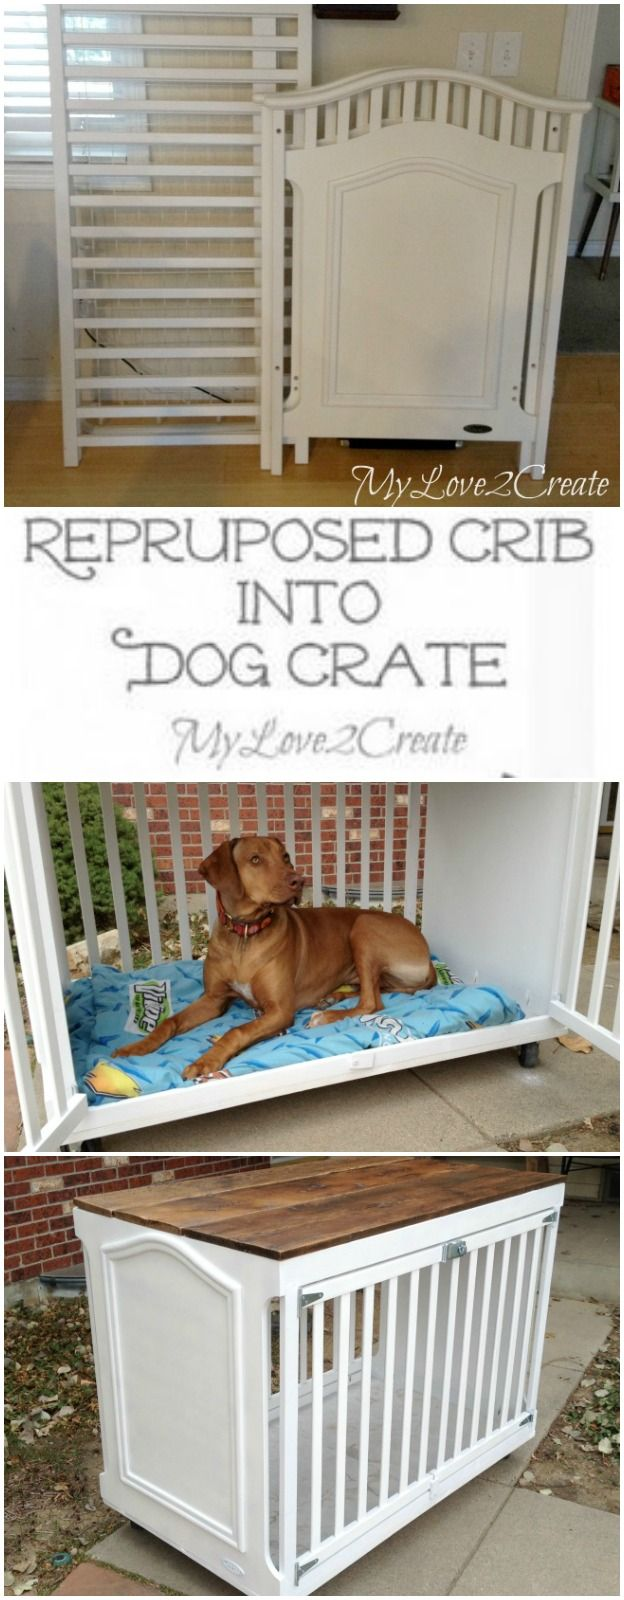 How clever is this repurposed crib turned